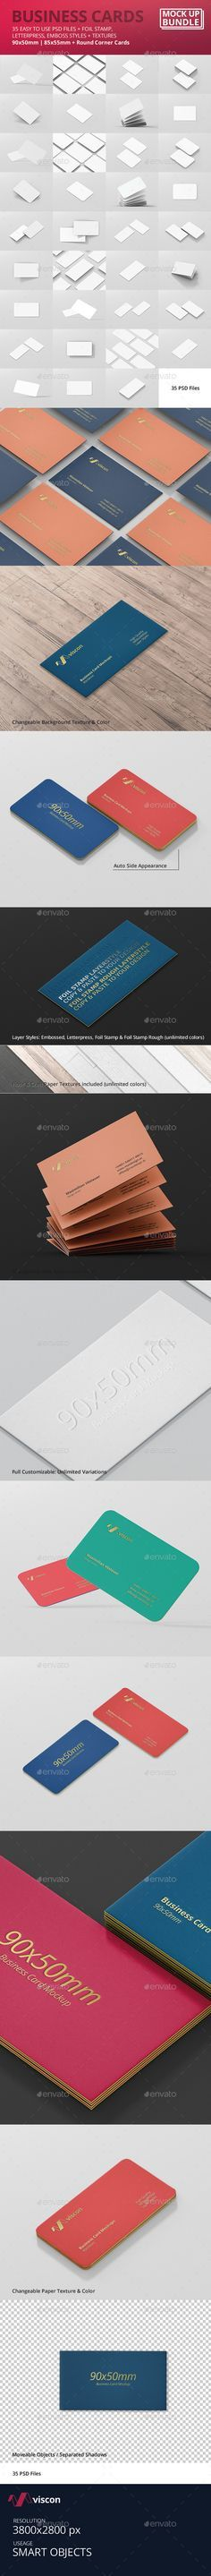 50 best package design mock up graphics images on pinterest buy business card mock up bundle by visconbiz on graphicriver 35 photorealistic high quality business card psd mockup for print design portfolio reheart Gallery